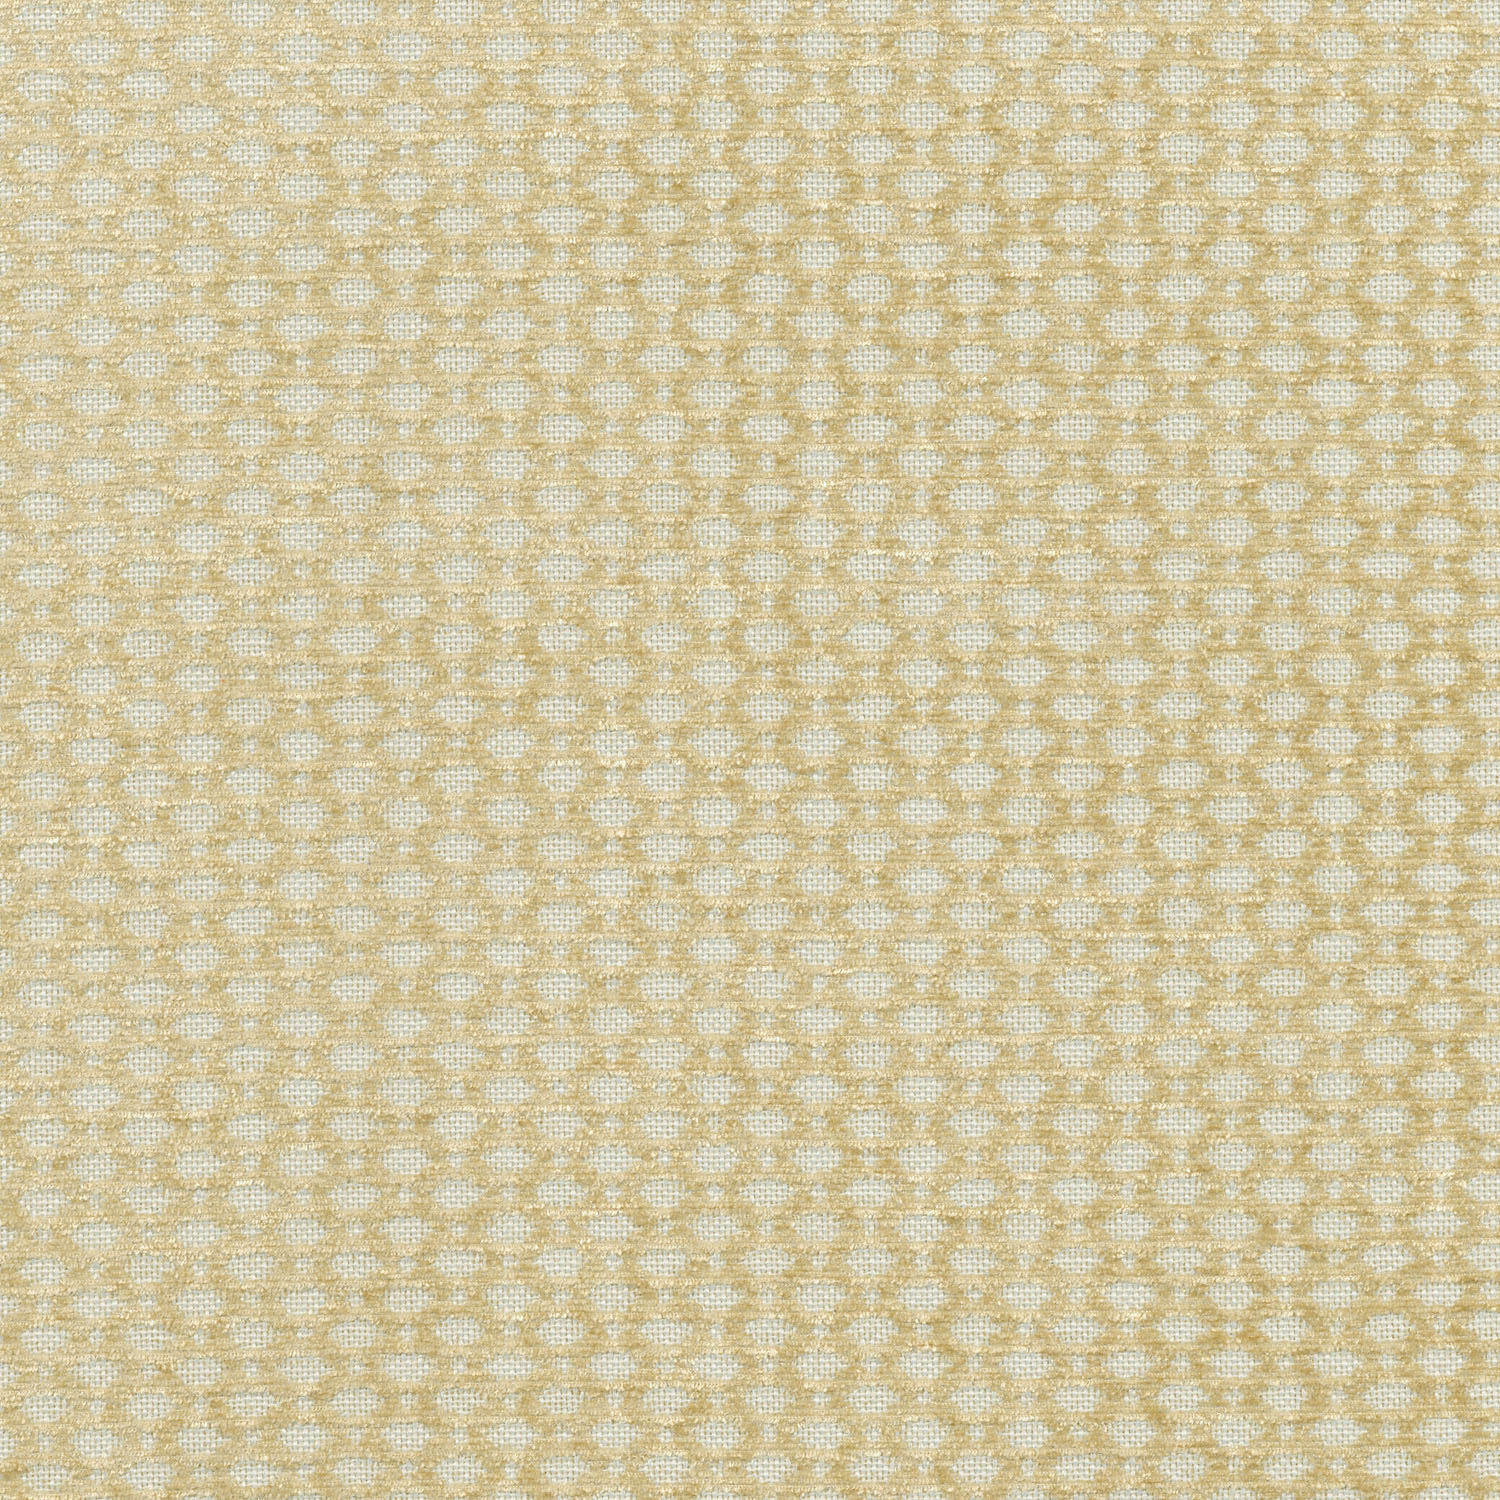 Home Decor 8\u0022x8\u0022 Fabric Swatch-IMAN Eden Opal